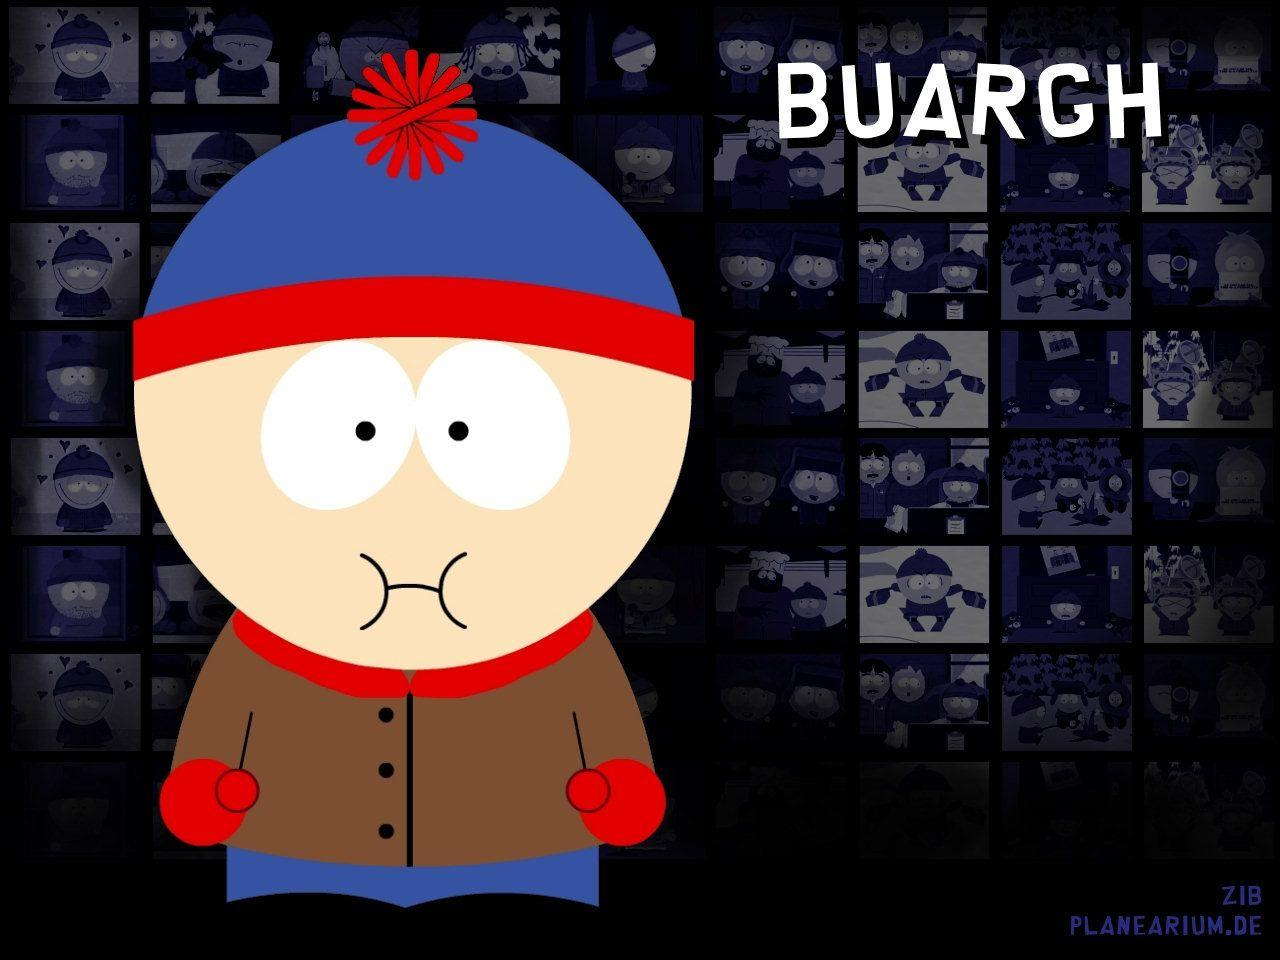 South Park Computer Wallpapers, Desktop Backgrounds 1280x960 Id: 13490